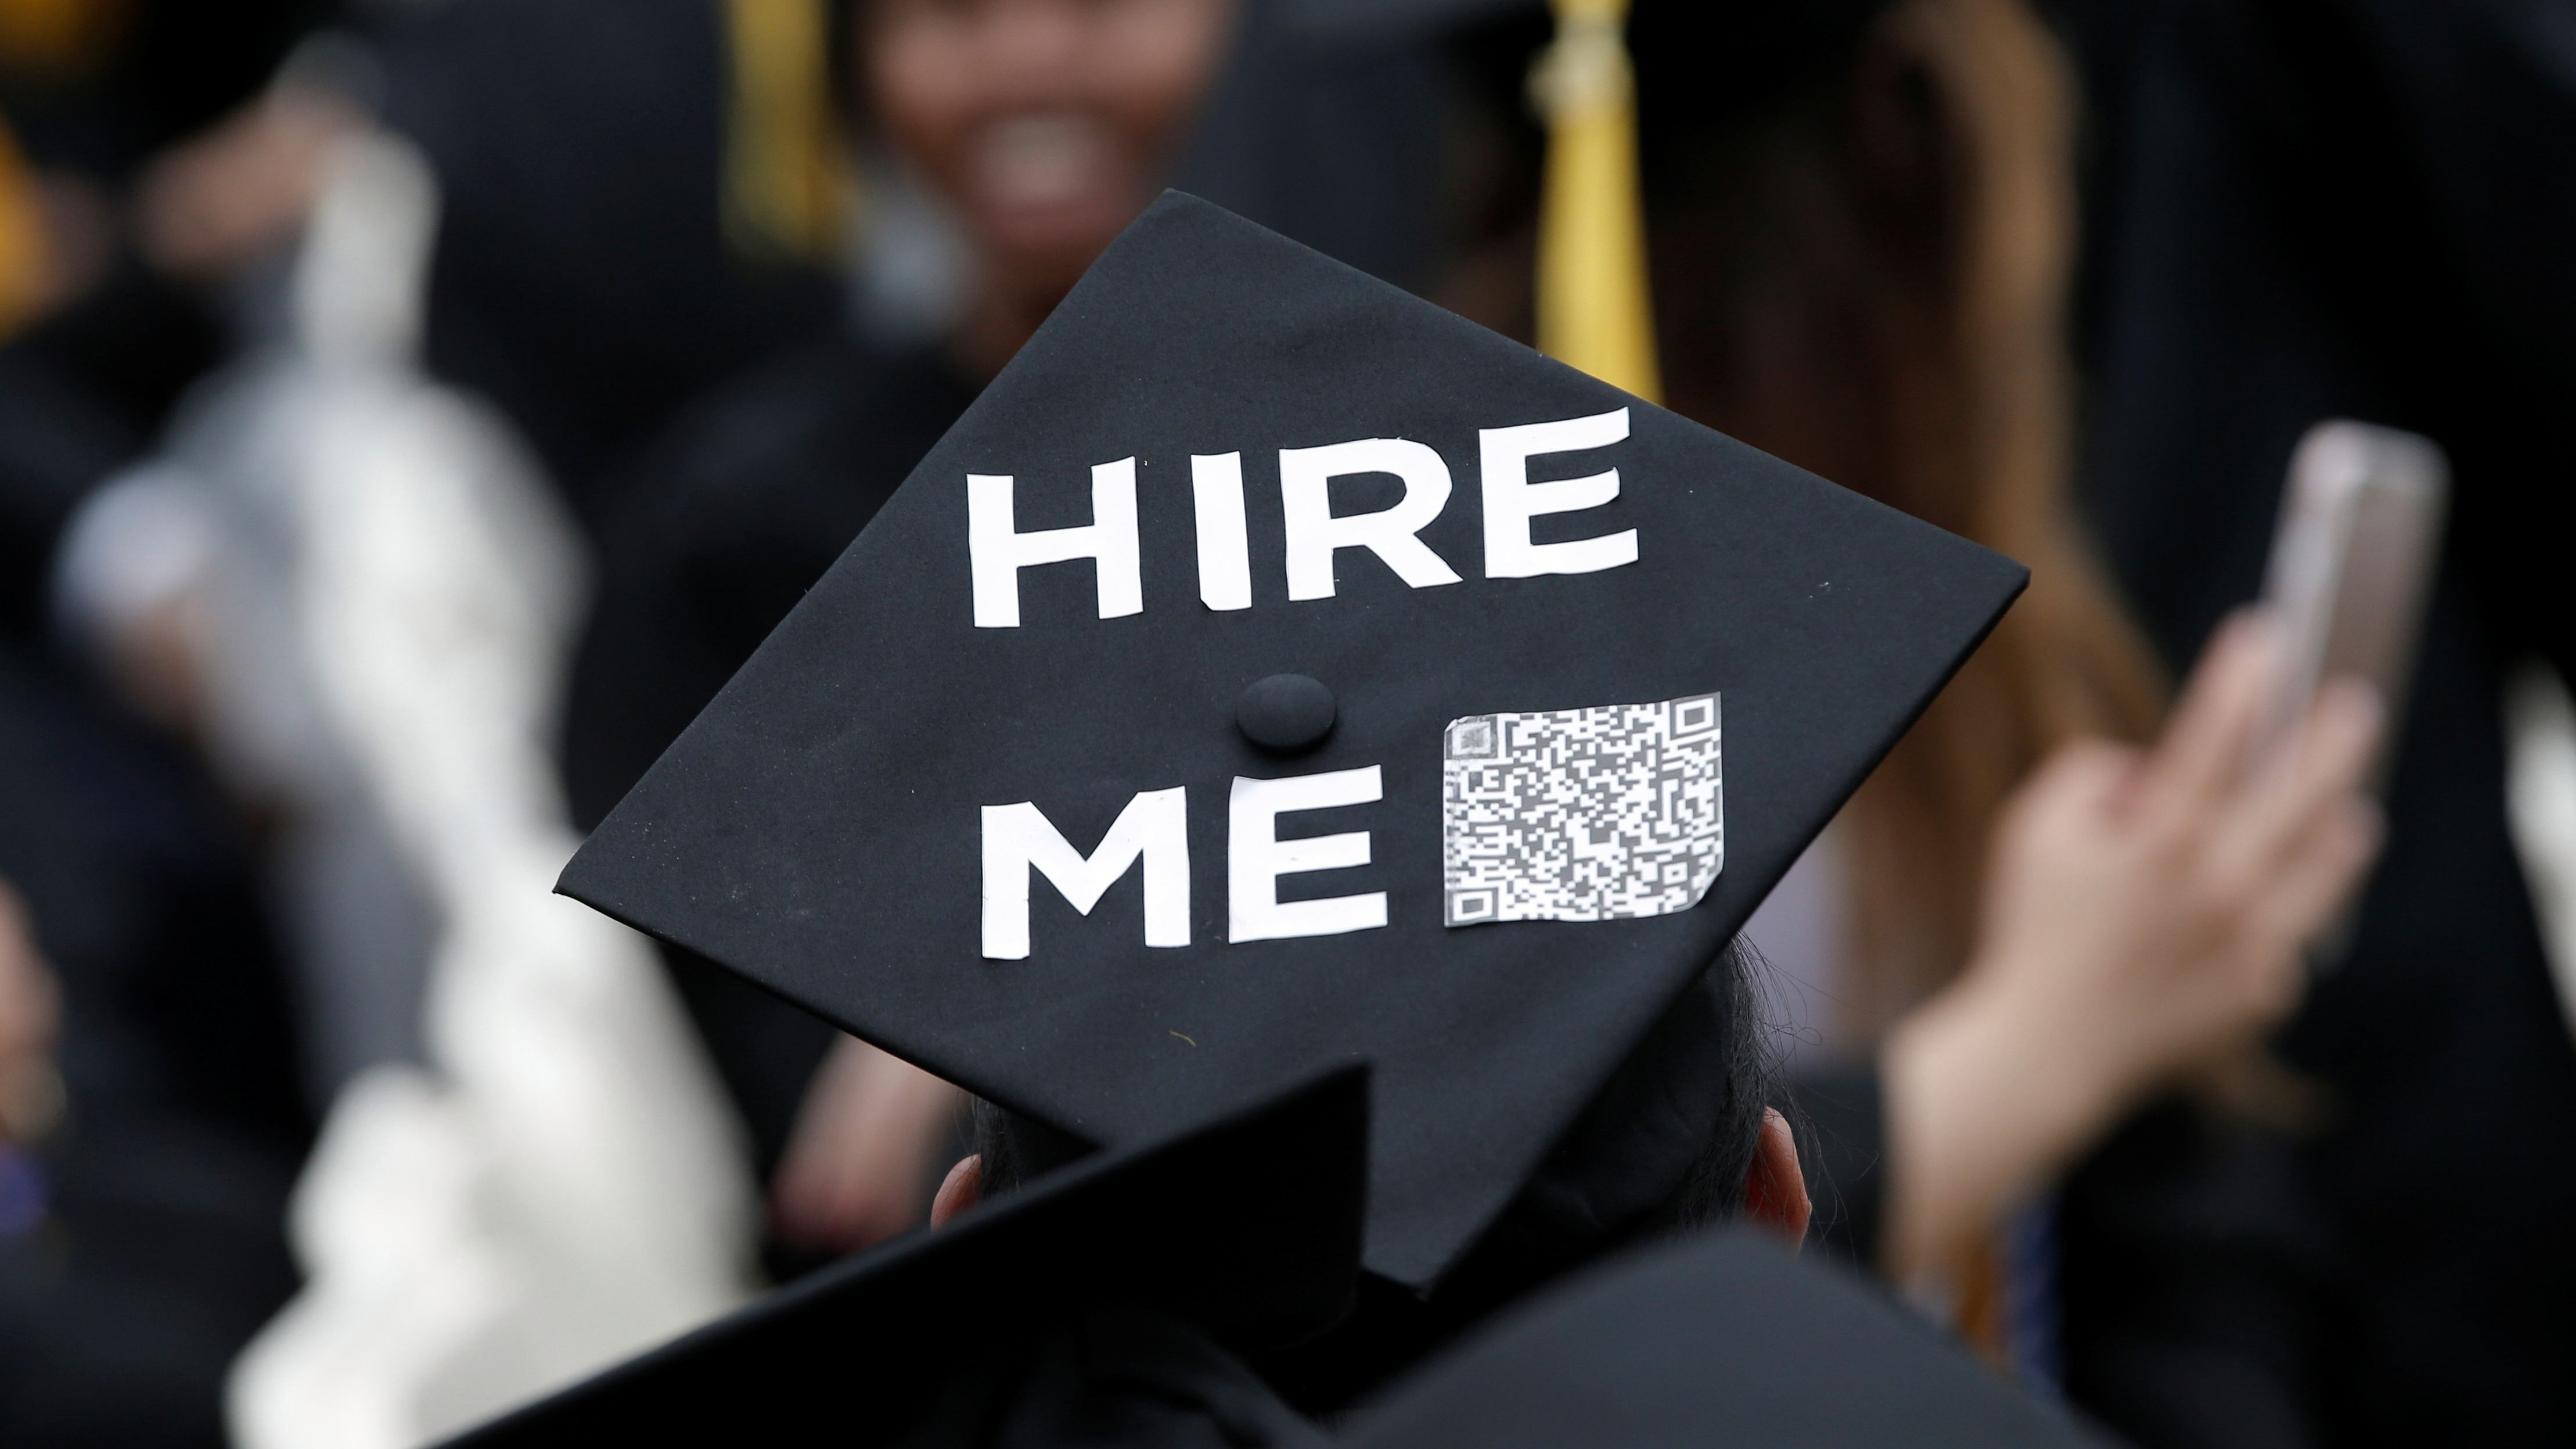 A graduating student of the CCNY wears a message on his cap during the College's commencement ceremony in the Harlem section of Manhattan, New York